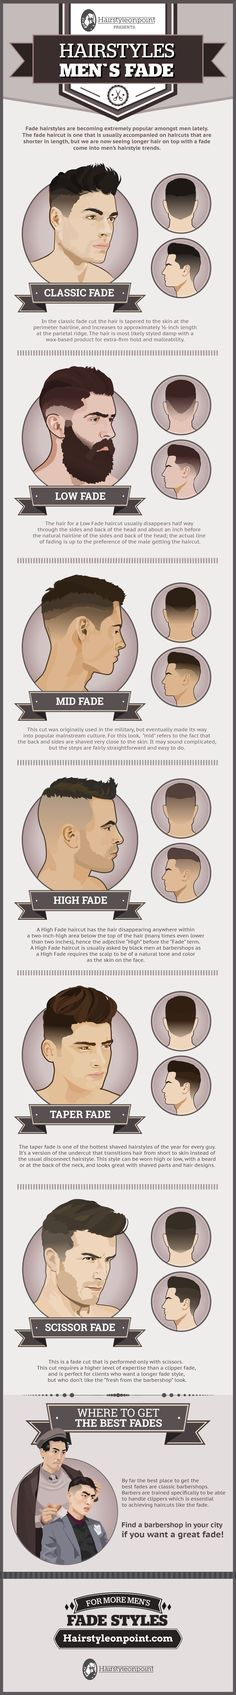 Men's Hairstyles: A Simple Guide To Popular And Modern Fades